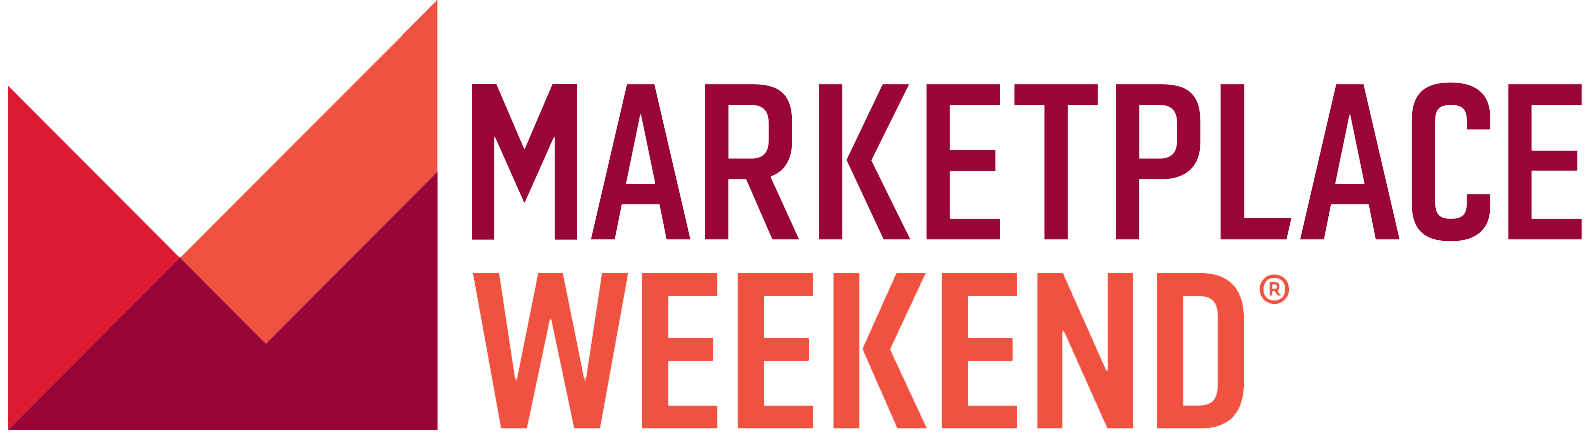 Marketplace Weekend for Friday, October 28, 2016